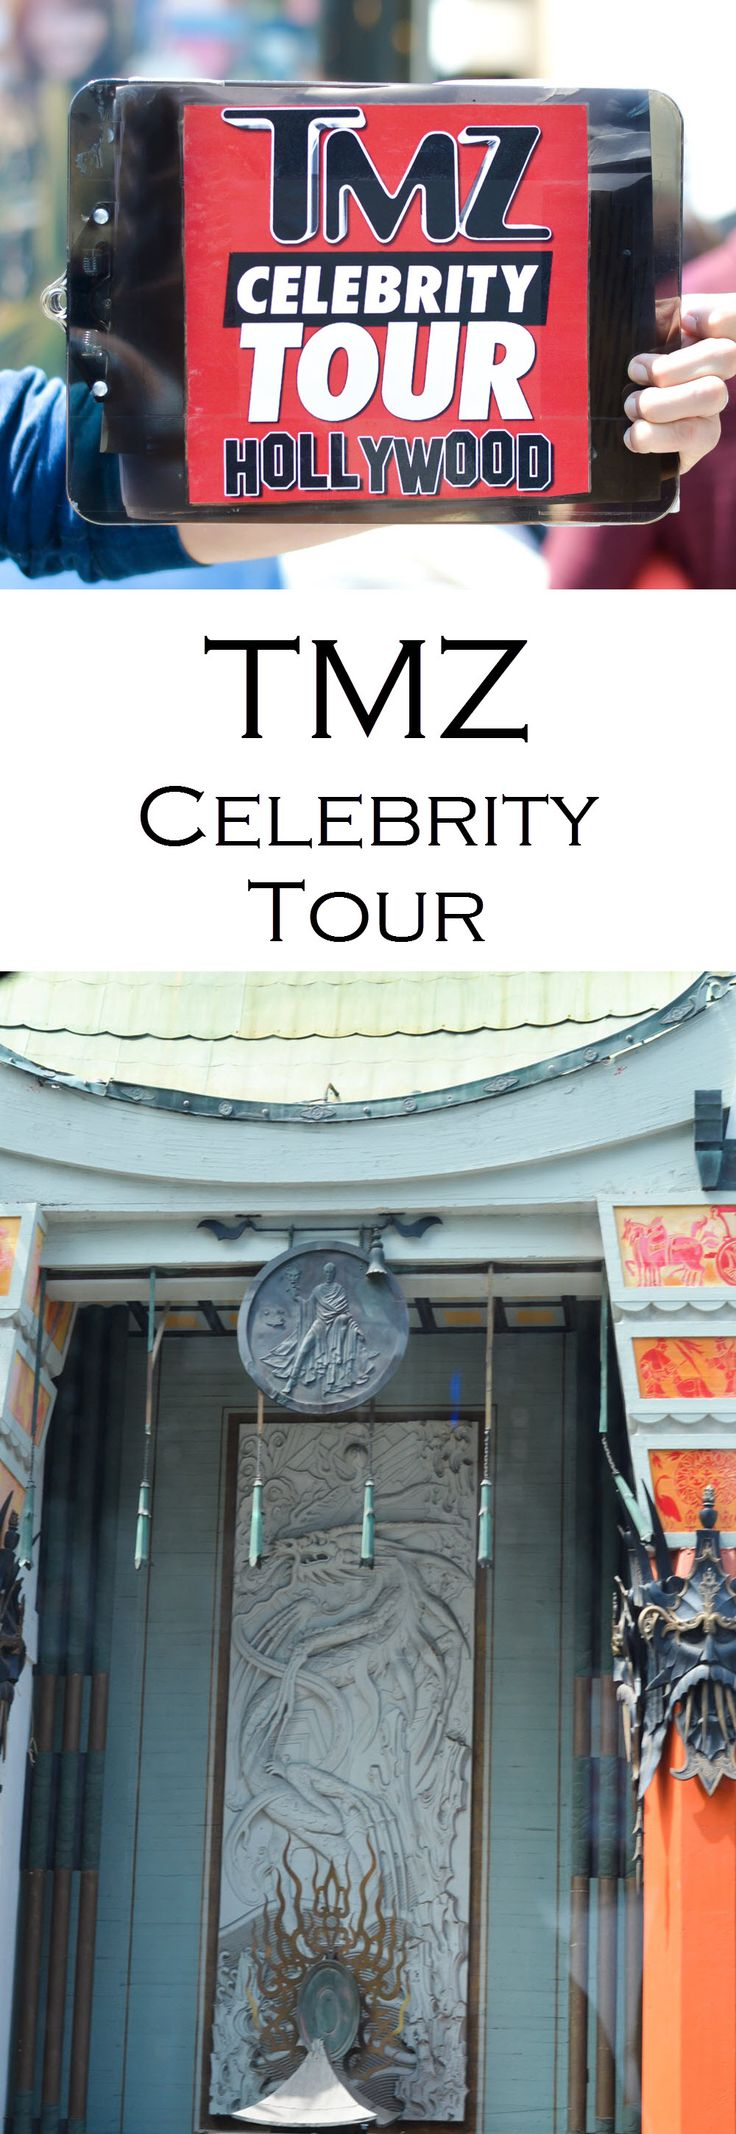 Check out the TMZ Celebrity Tour next time you're in Hollywood! This Los Angeles Celebrity Tour is great fun. See the highlights and lowlifes of Hollywood!